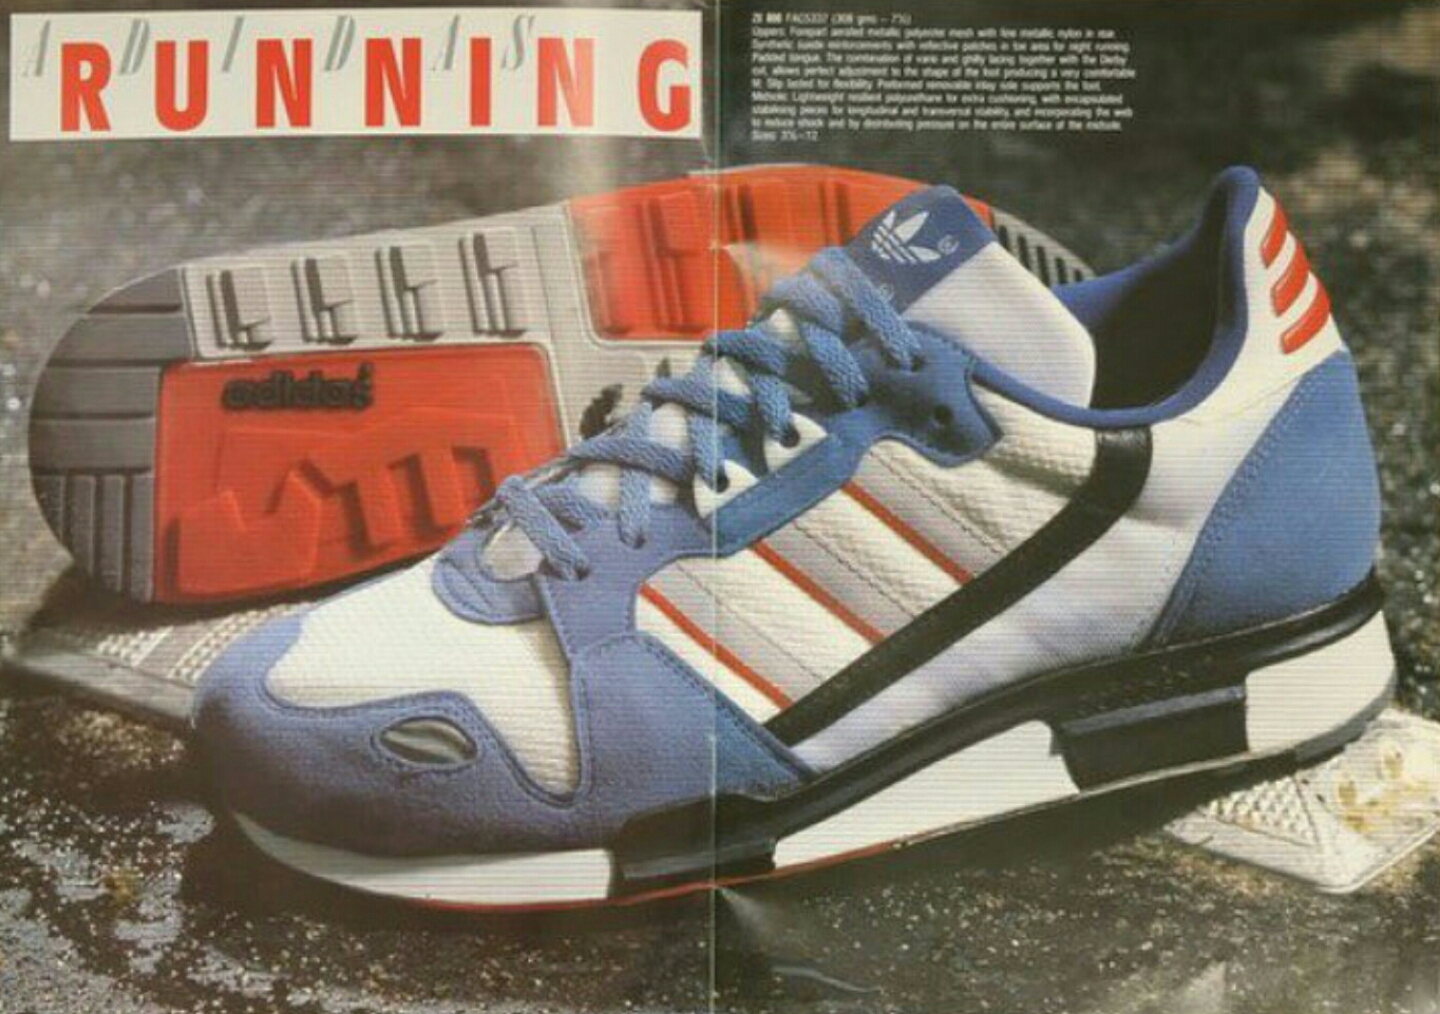 cd9e97c0c57b6 ... release date the adidas zx800 was one of the first shoes to be worn by  athletes